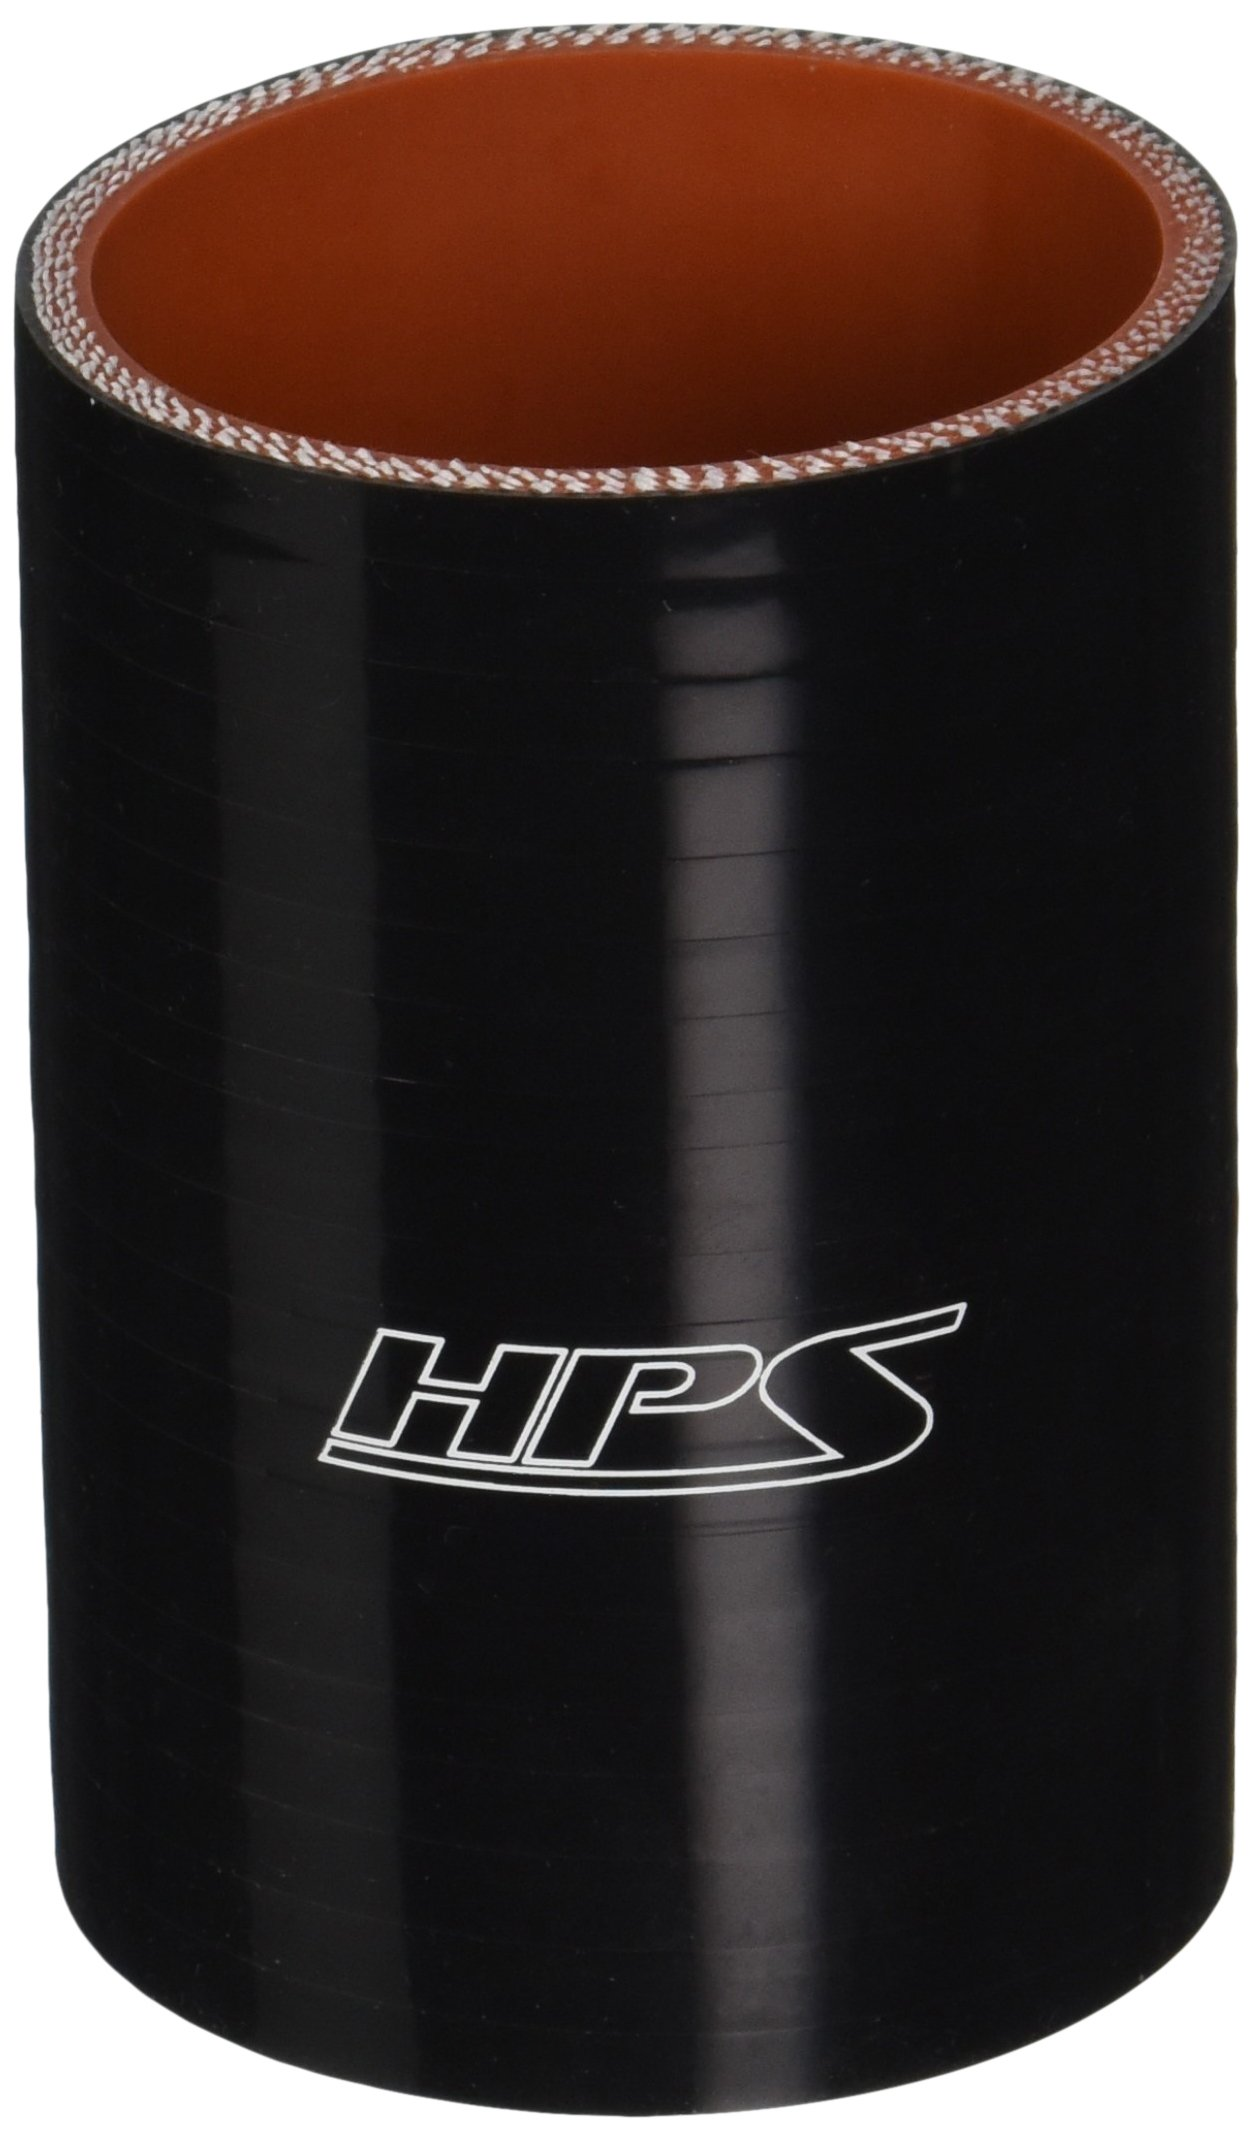 75 PSI Maximum Pressure 2-5//9 ID 3 Length Blue HPS HTSC-256-BLUE Silicone High Temperature 4-ply Reinforced Straight Coupler Hose